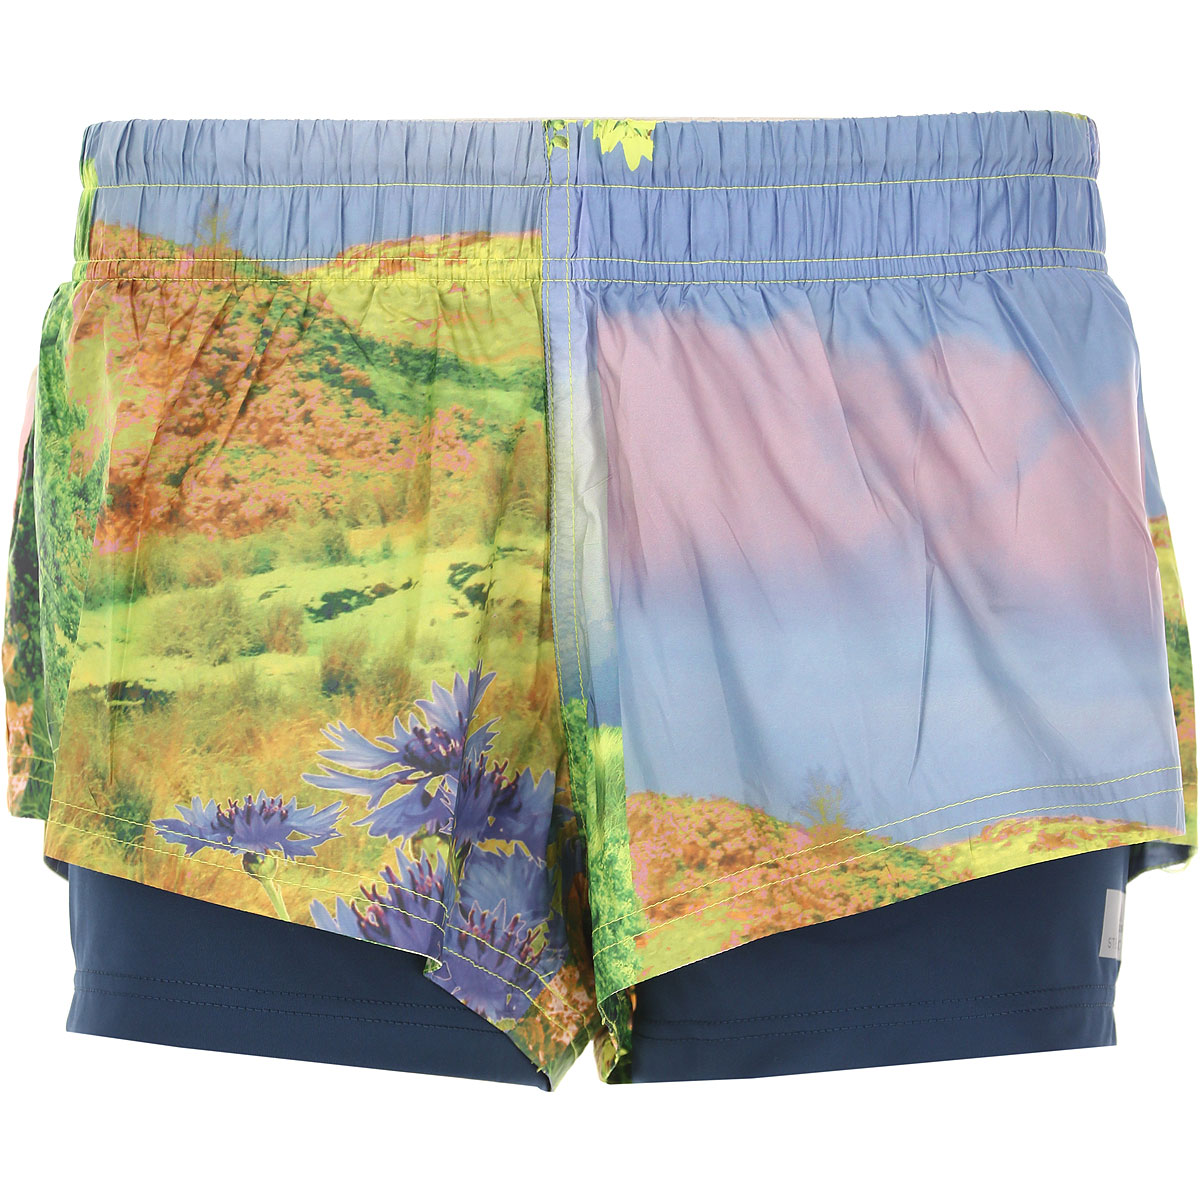 Image of Adidas Shorts for Women On Sale, Multicolor, Polyestere Recycled, 2017, 2 4 6